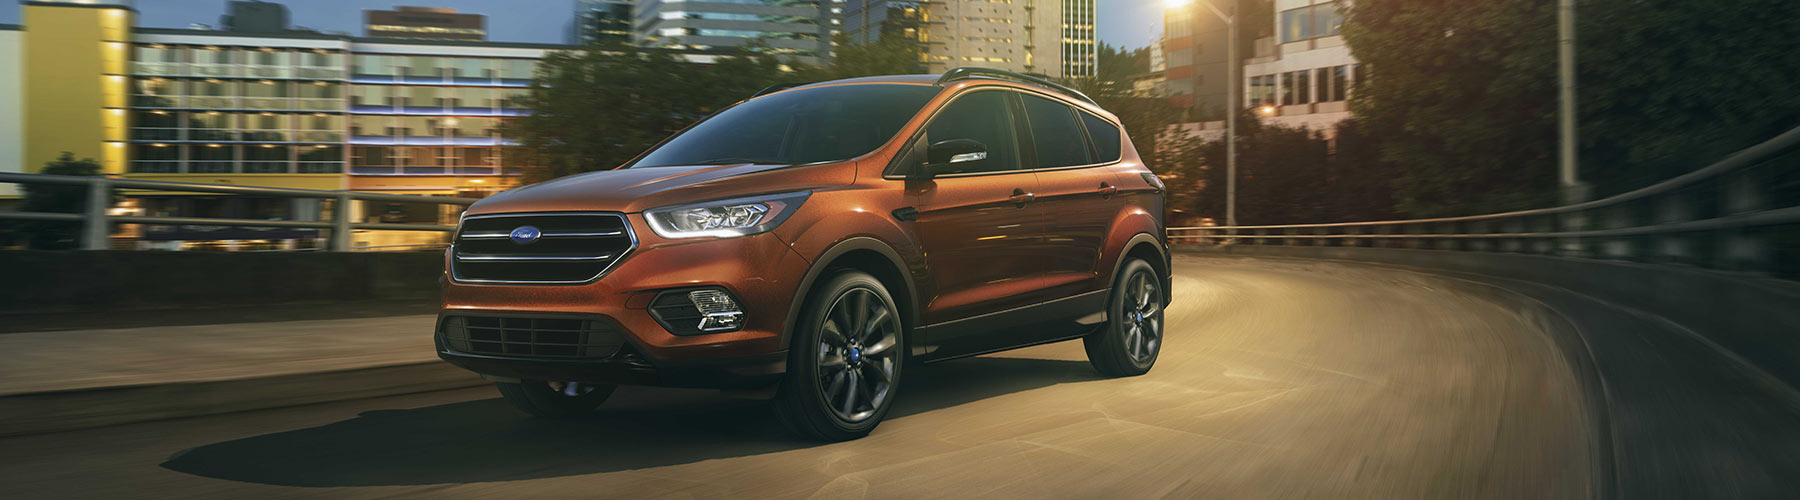 Discovery-Ford-Escape